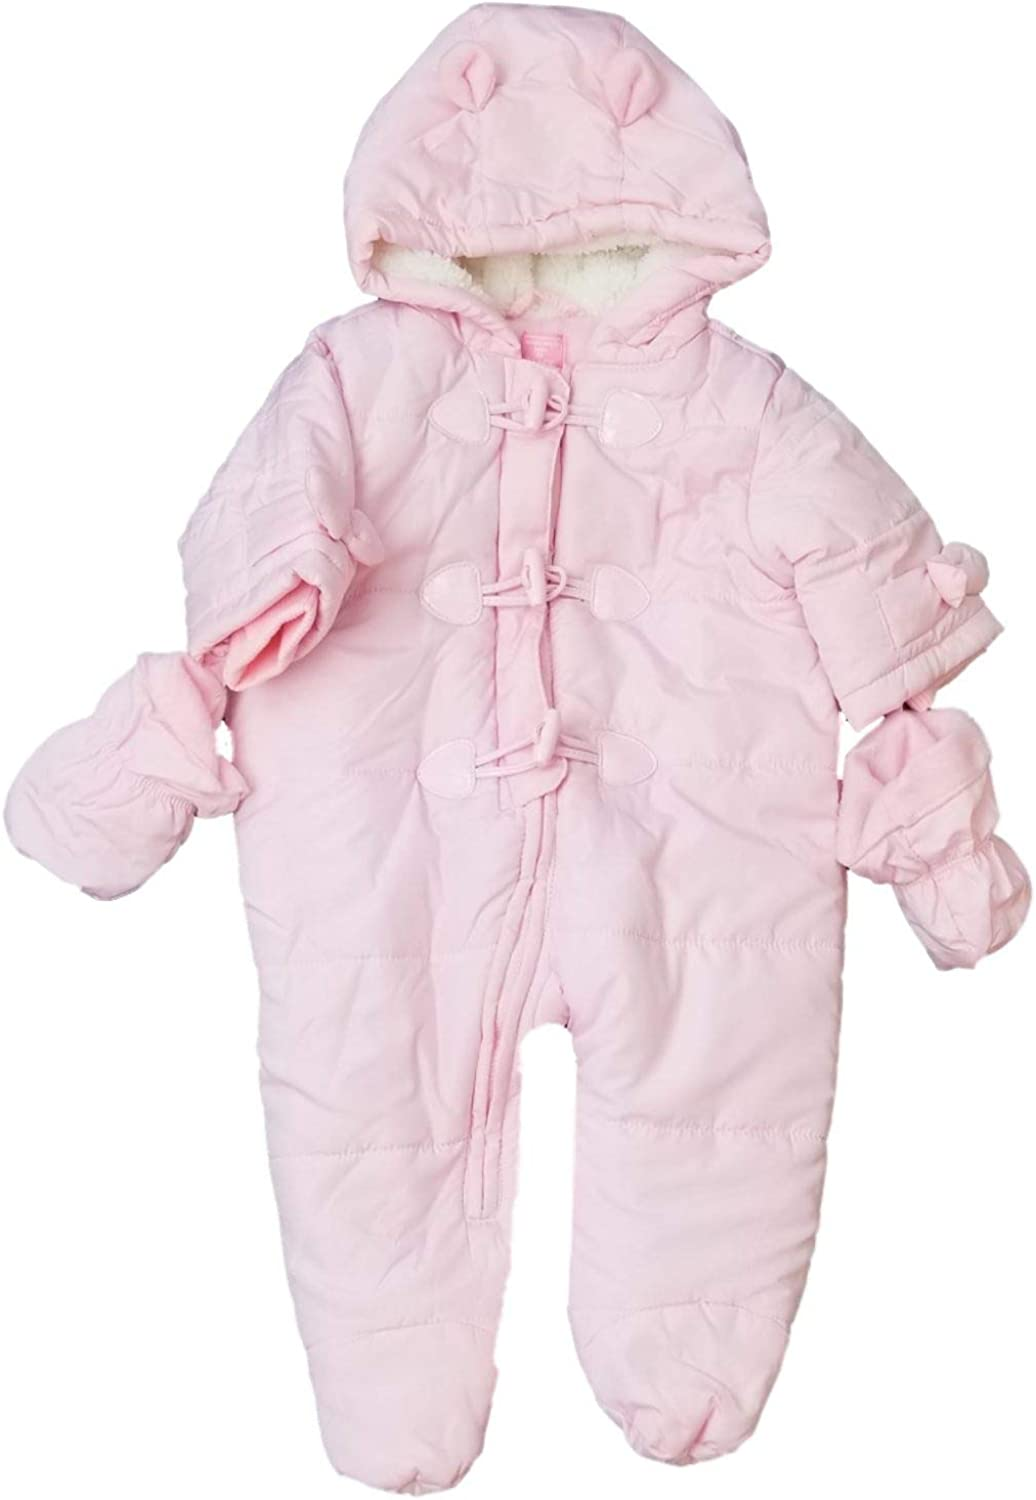 Infant Baby Girls Pink Plush Quilted Snowsuit Baby Pram Snow Suit 3-6M